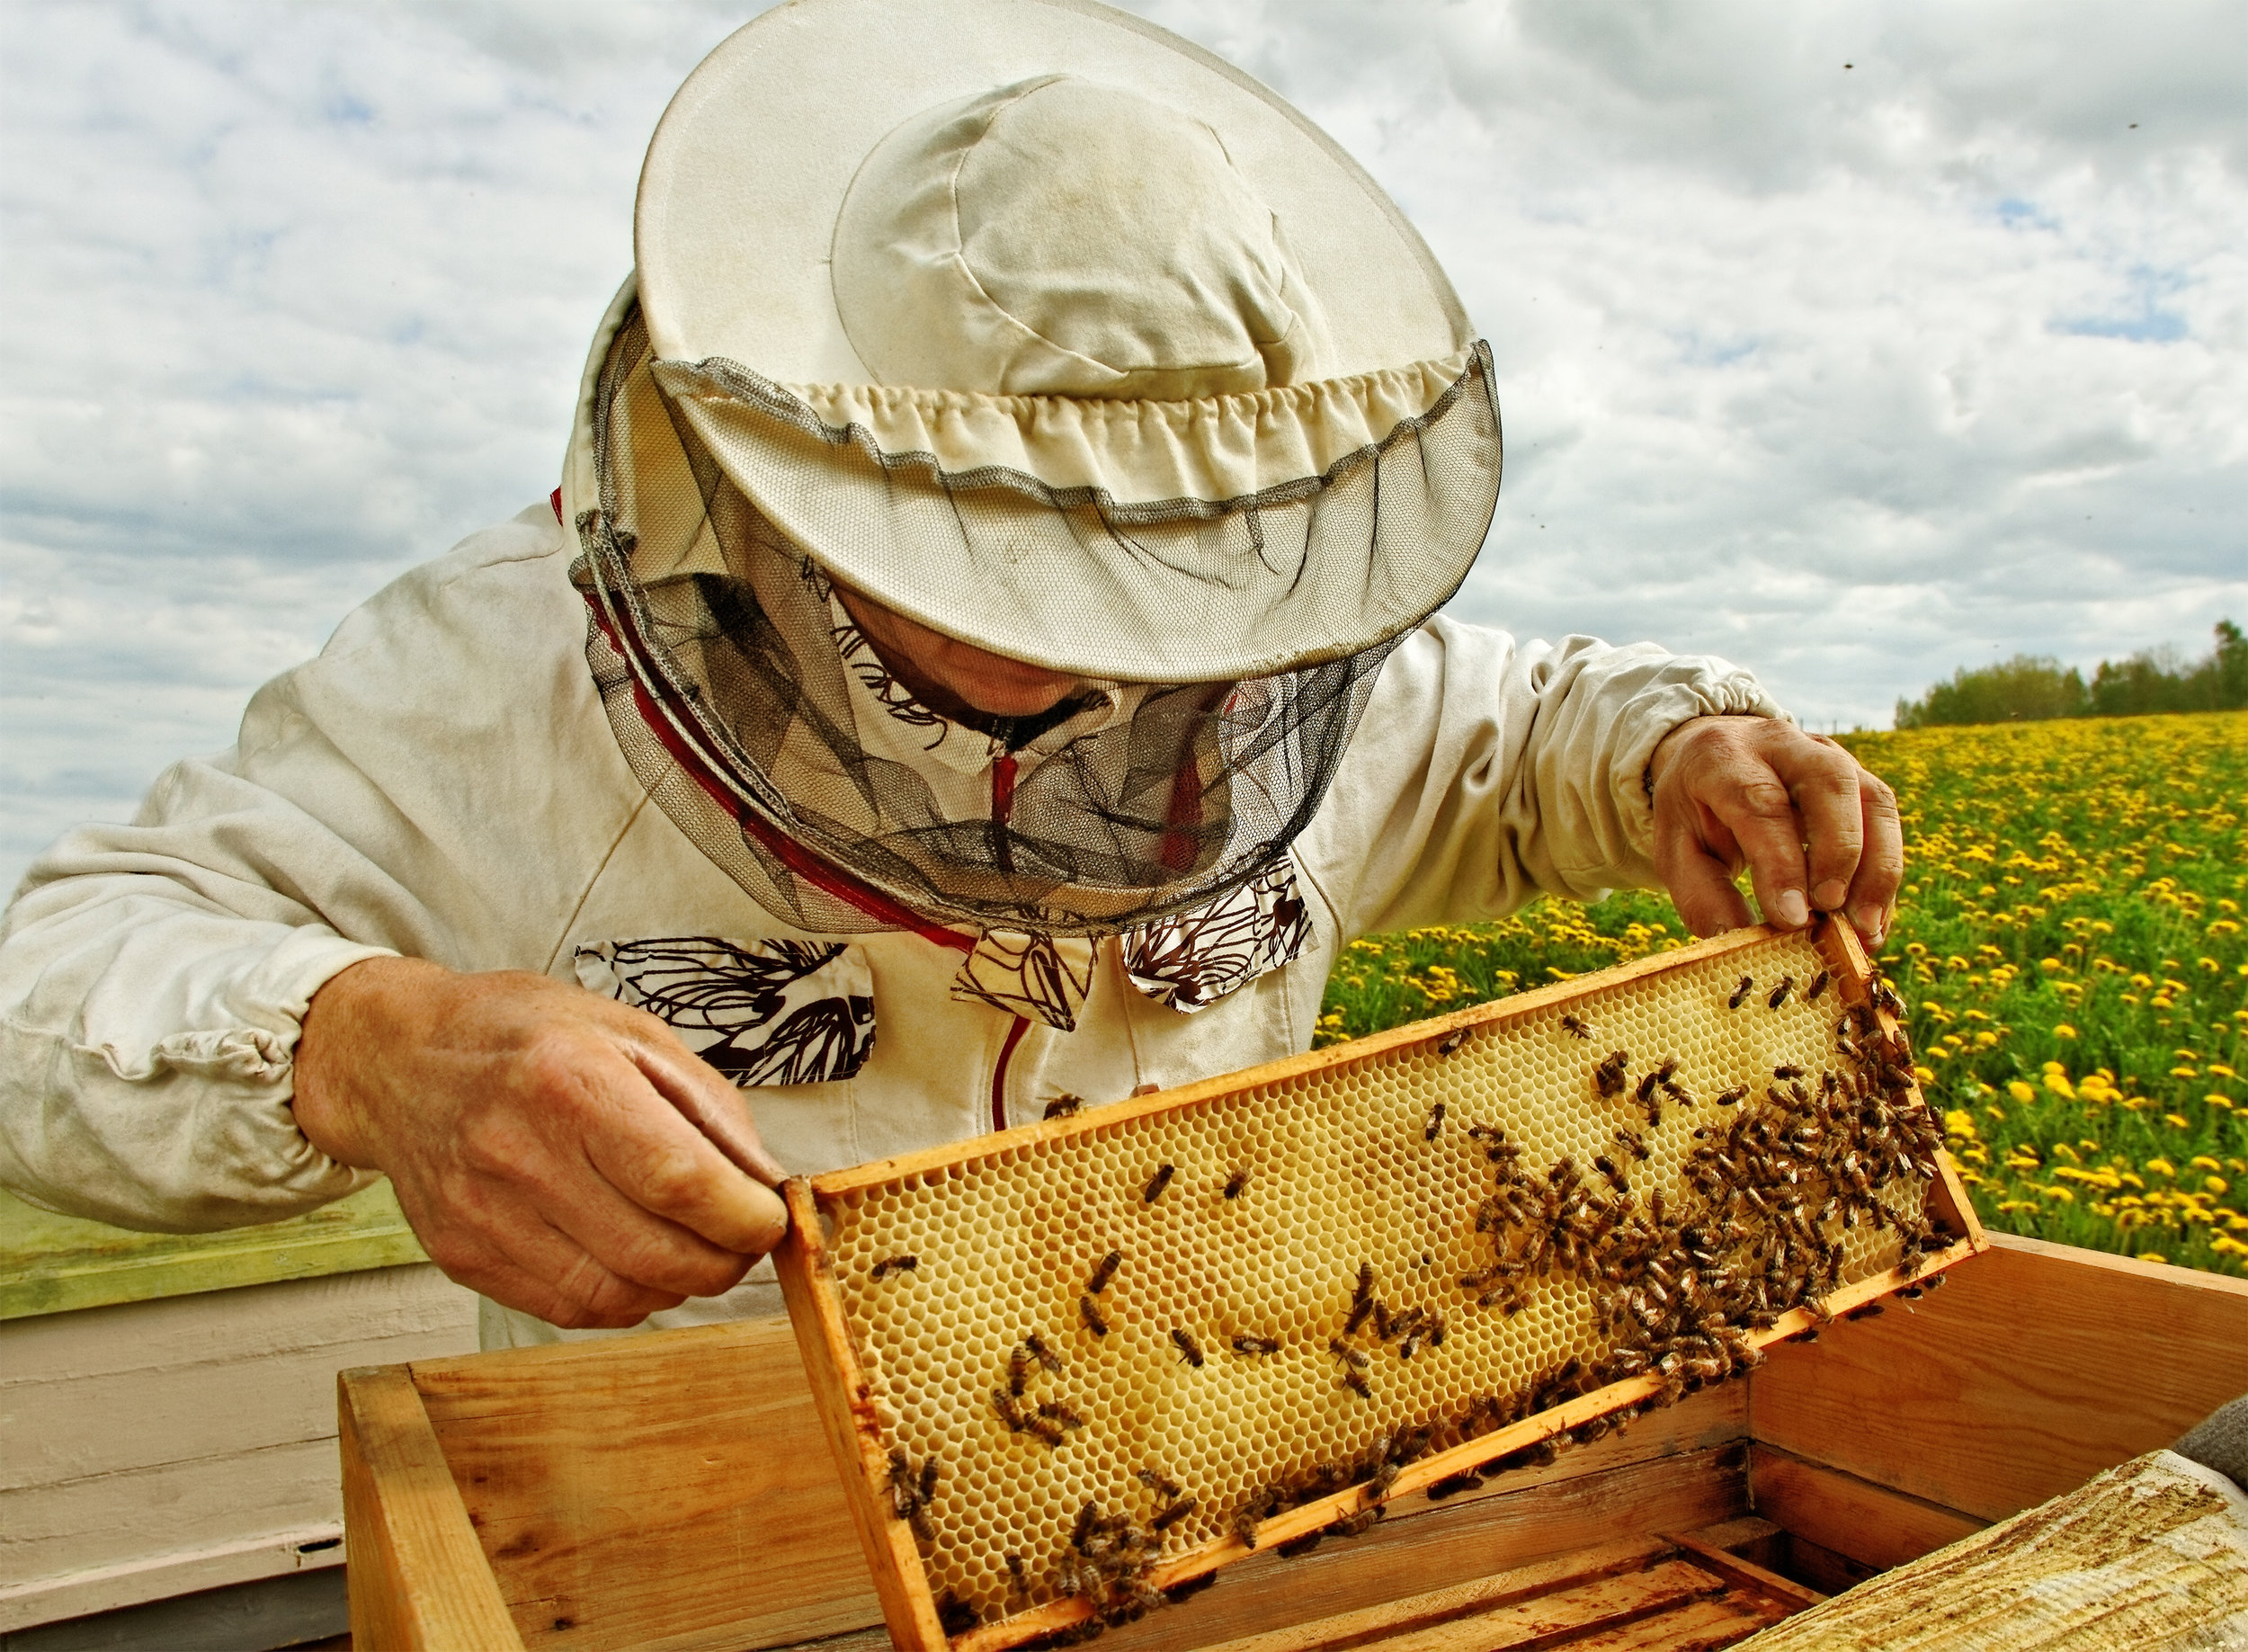 Bees For Sale - From your local Vancouver island bee supplier.